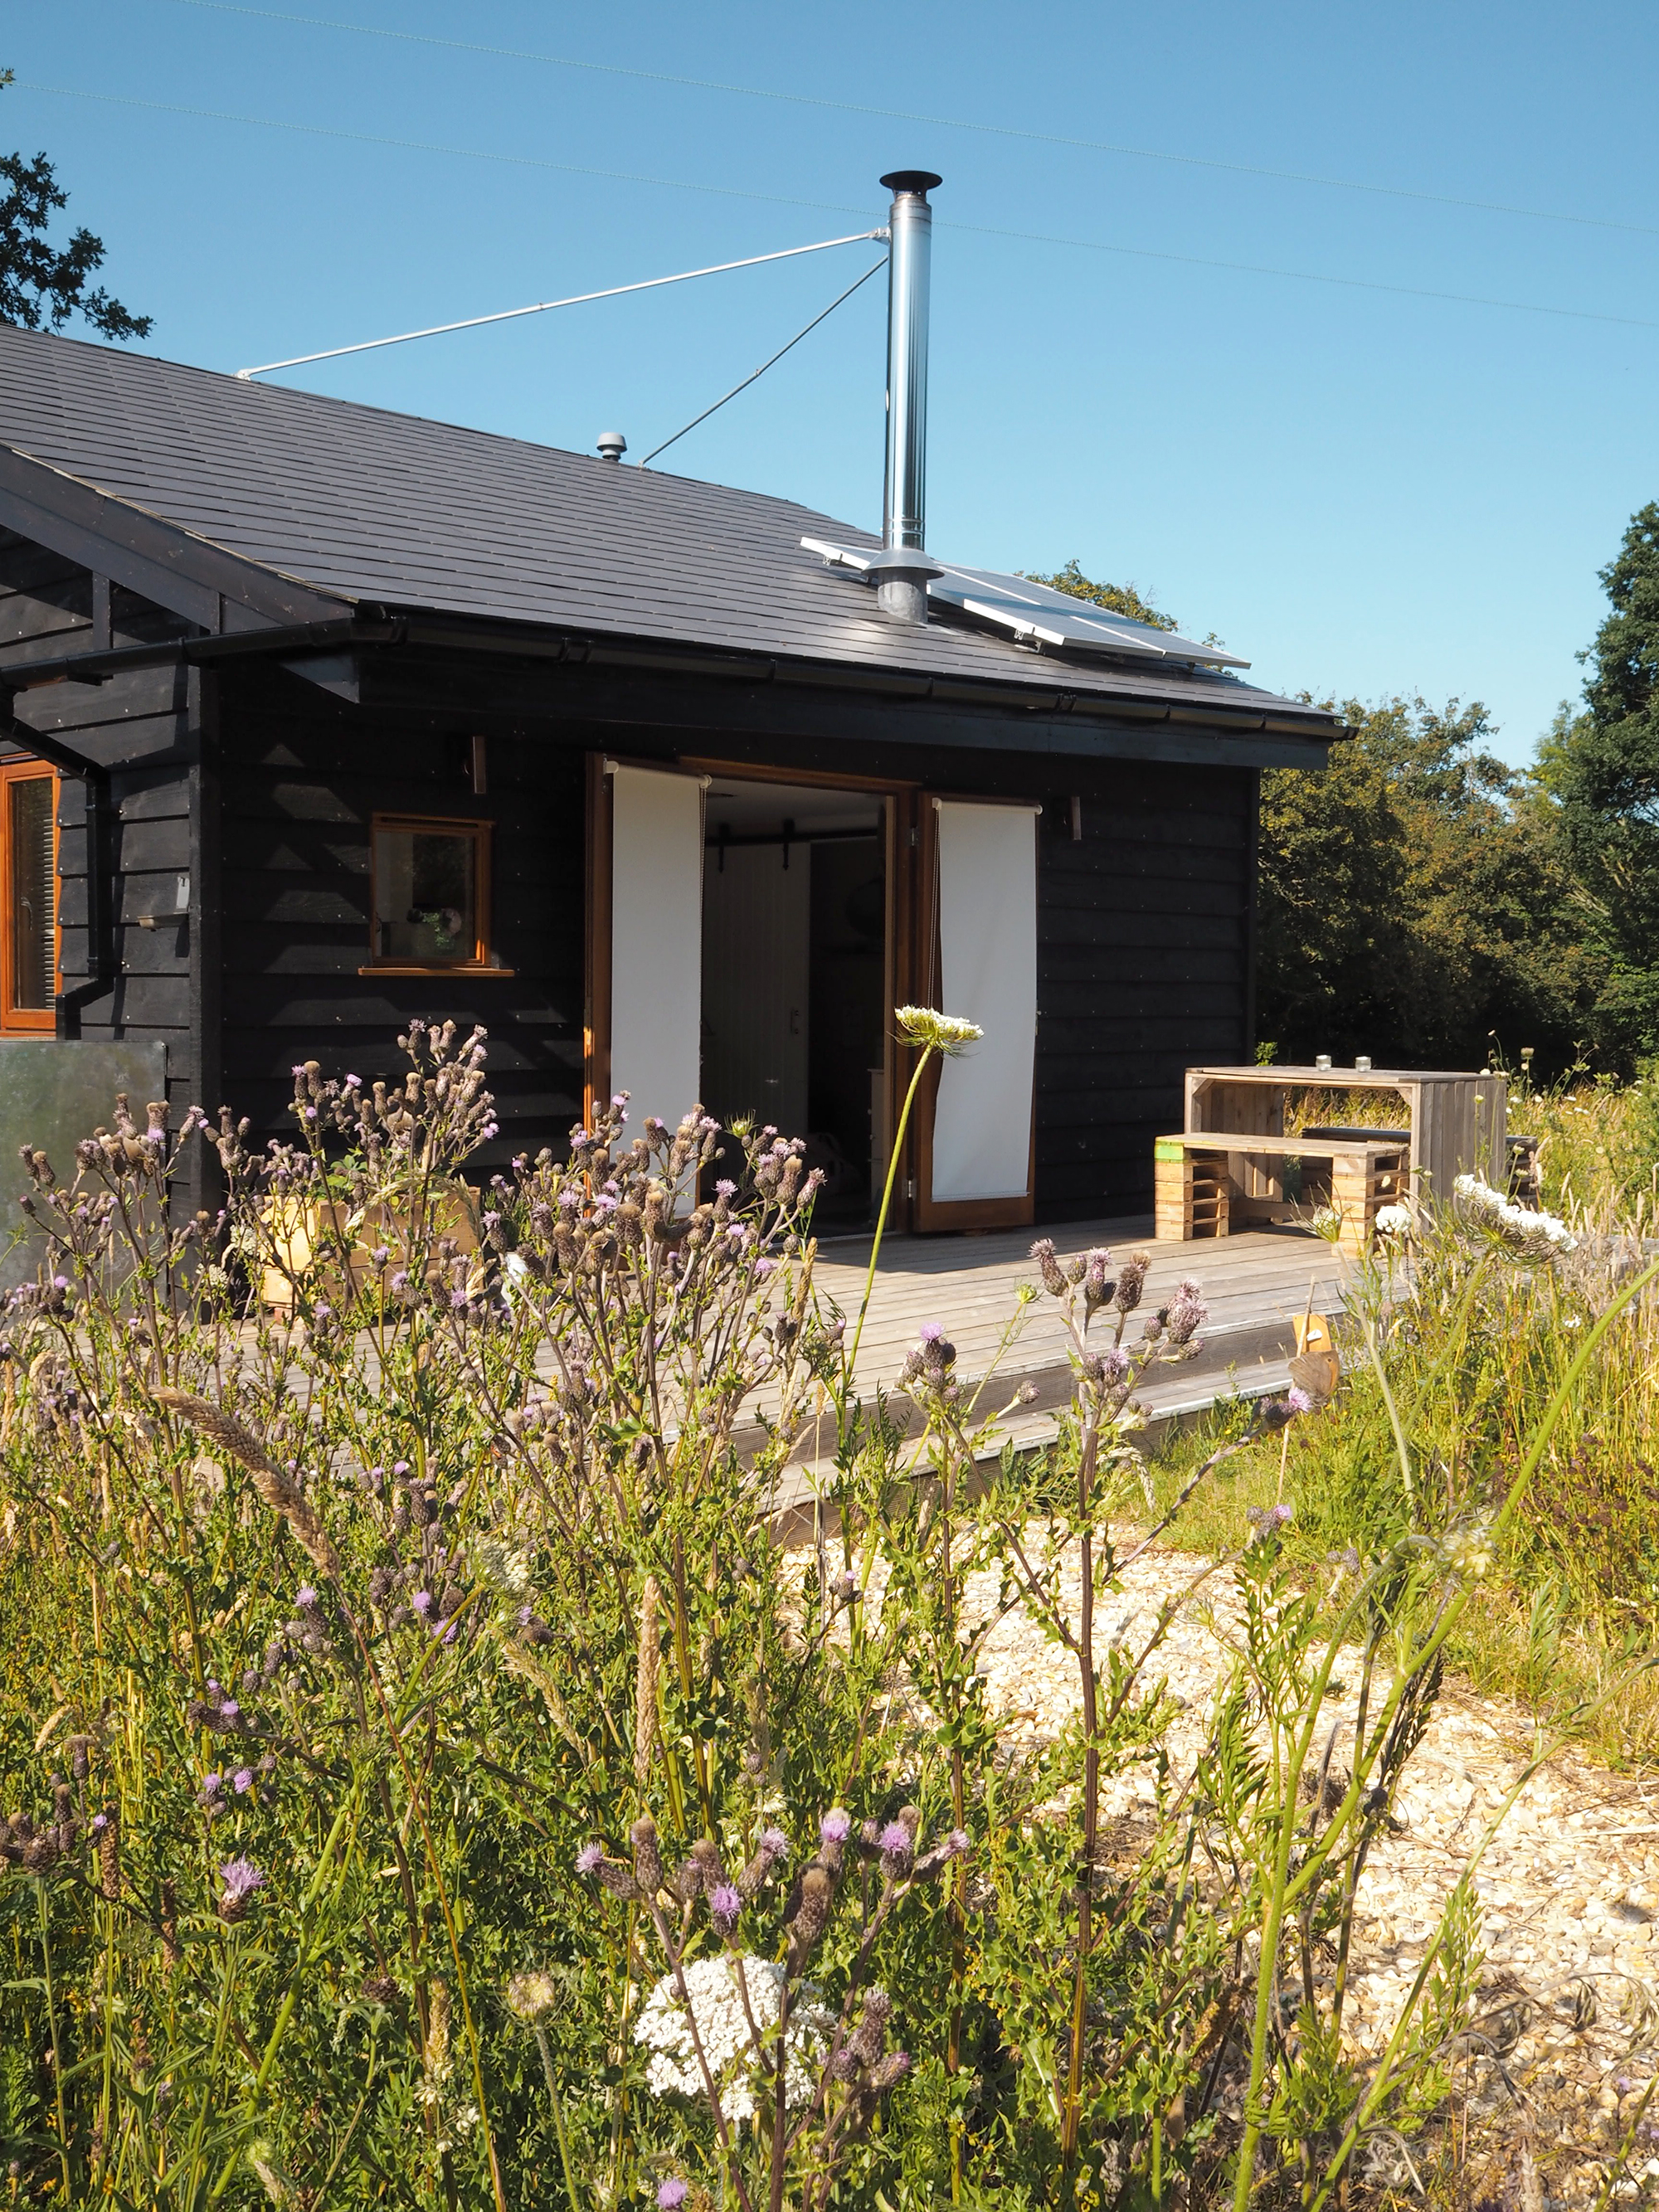 Sustainable holiday cabins - Tiny Home holidays - Isle of wight